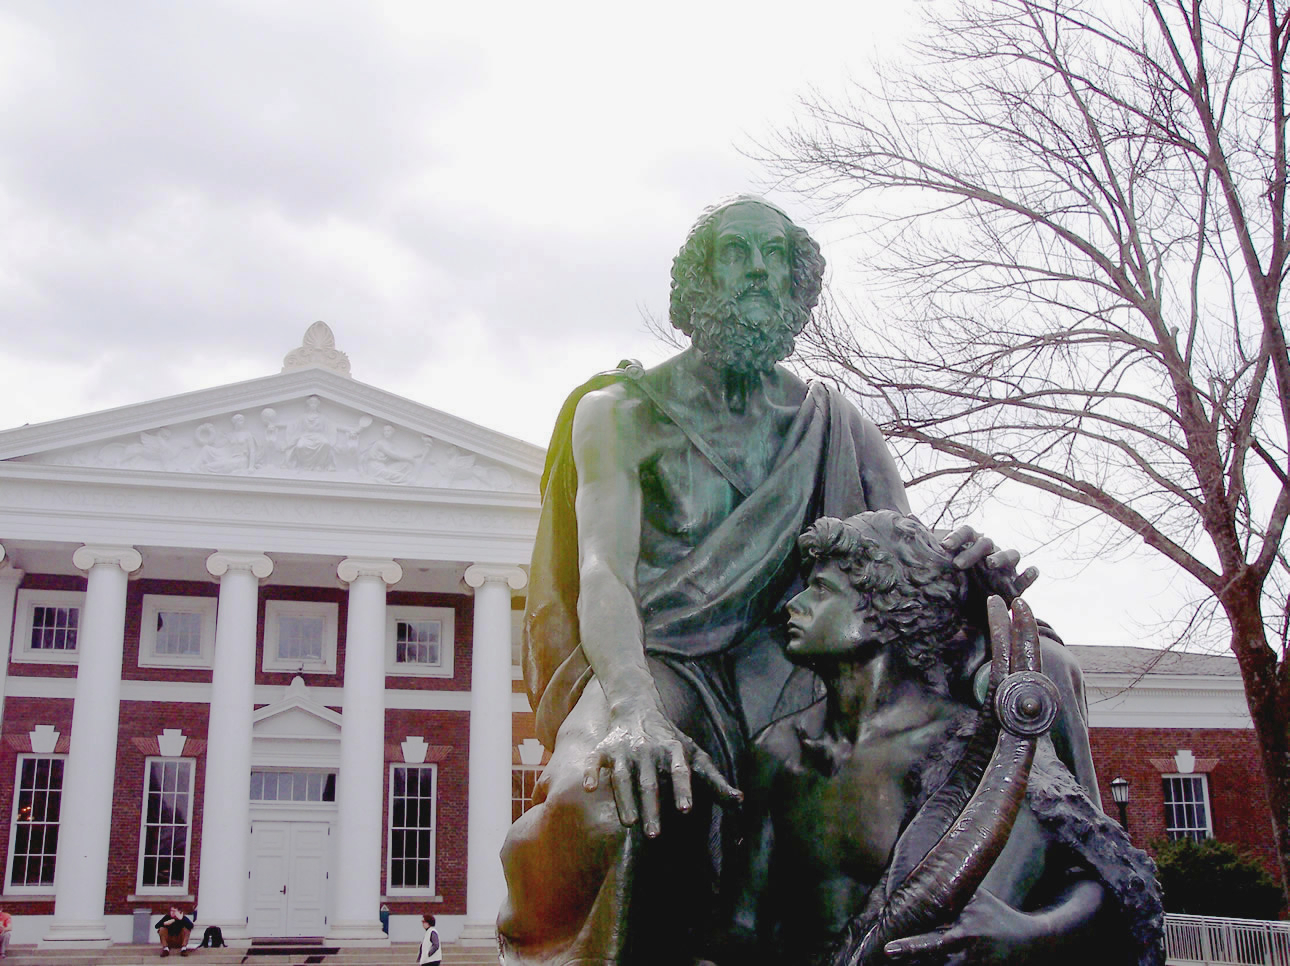 Statue of Bilnd Homer at the University of Virginia